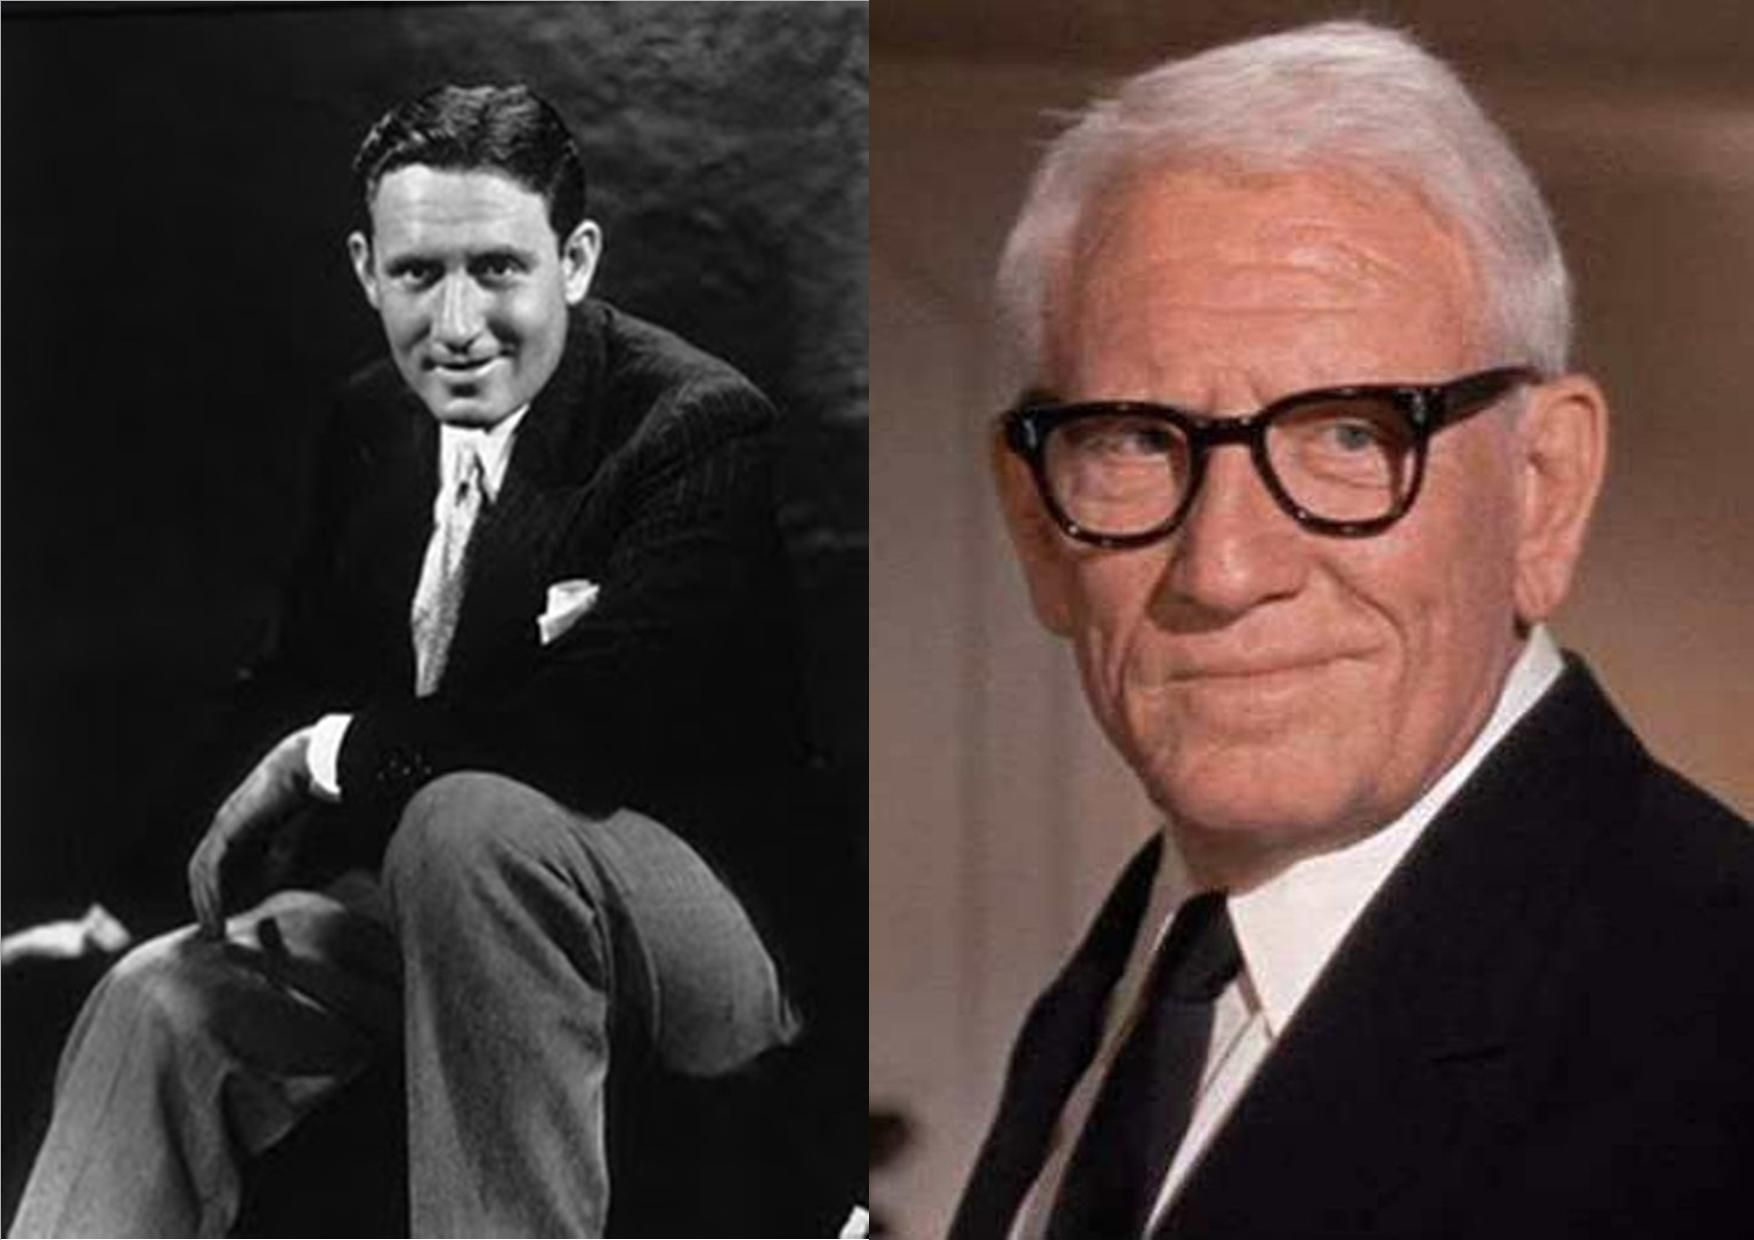 Spencer Tracy ~ Born Spencer Bonaventure Tracy April 5, 1900 in Milwaukee, Wisconsin, U.S. Died	June 10, 1967 (aged 67) in Beverly Hills, California, U.S. American actor, noted for his natural style and versatility. One of the major stars of Hollywood's Golden Age, Tracy was nominated for nine Academy Awards for Best Actor and won two, sharing the record for nominations in that category with Laurence Olivier.